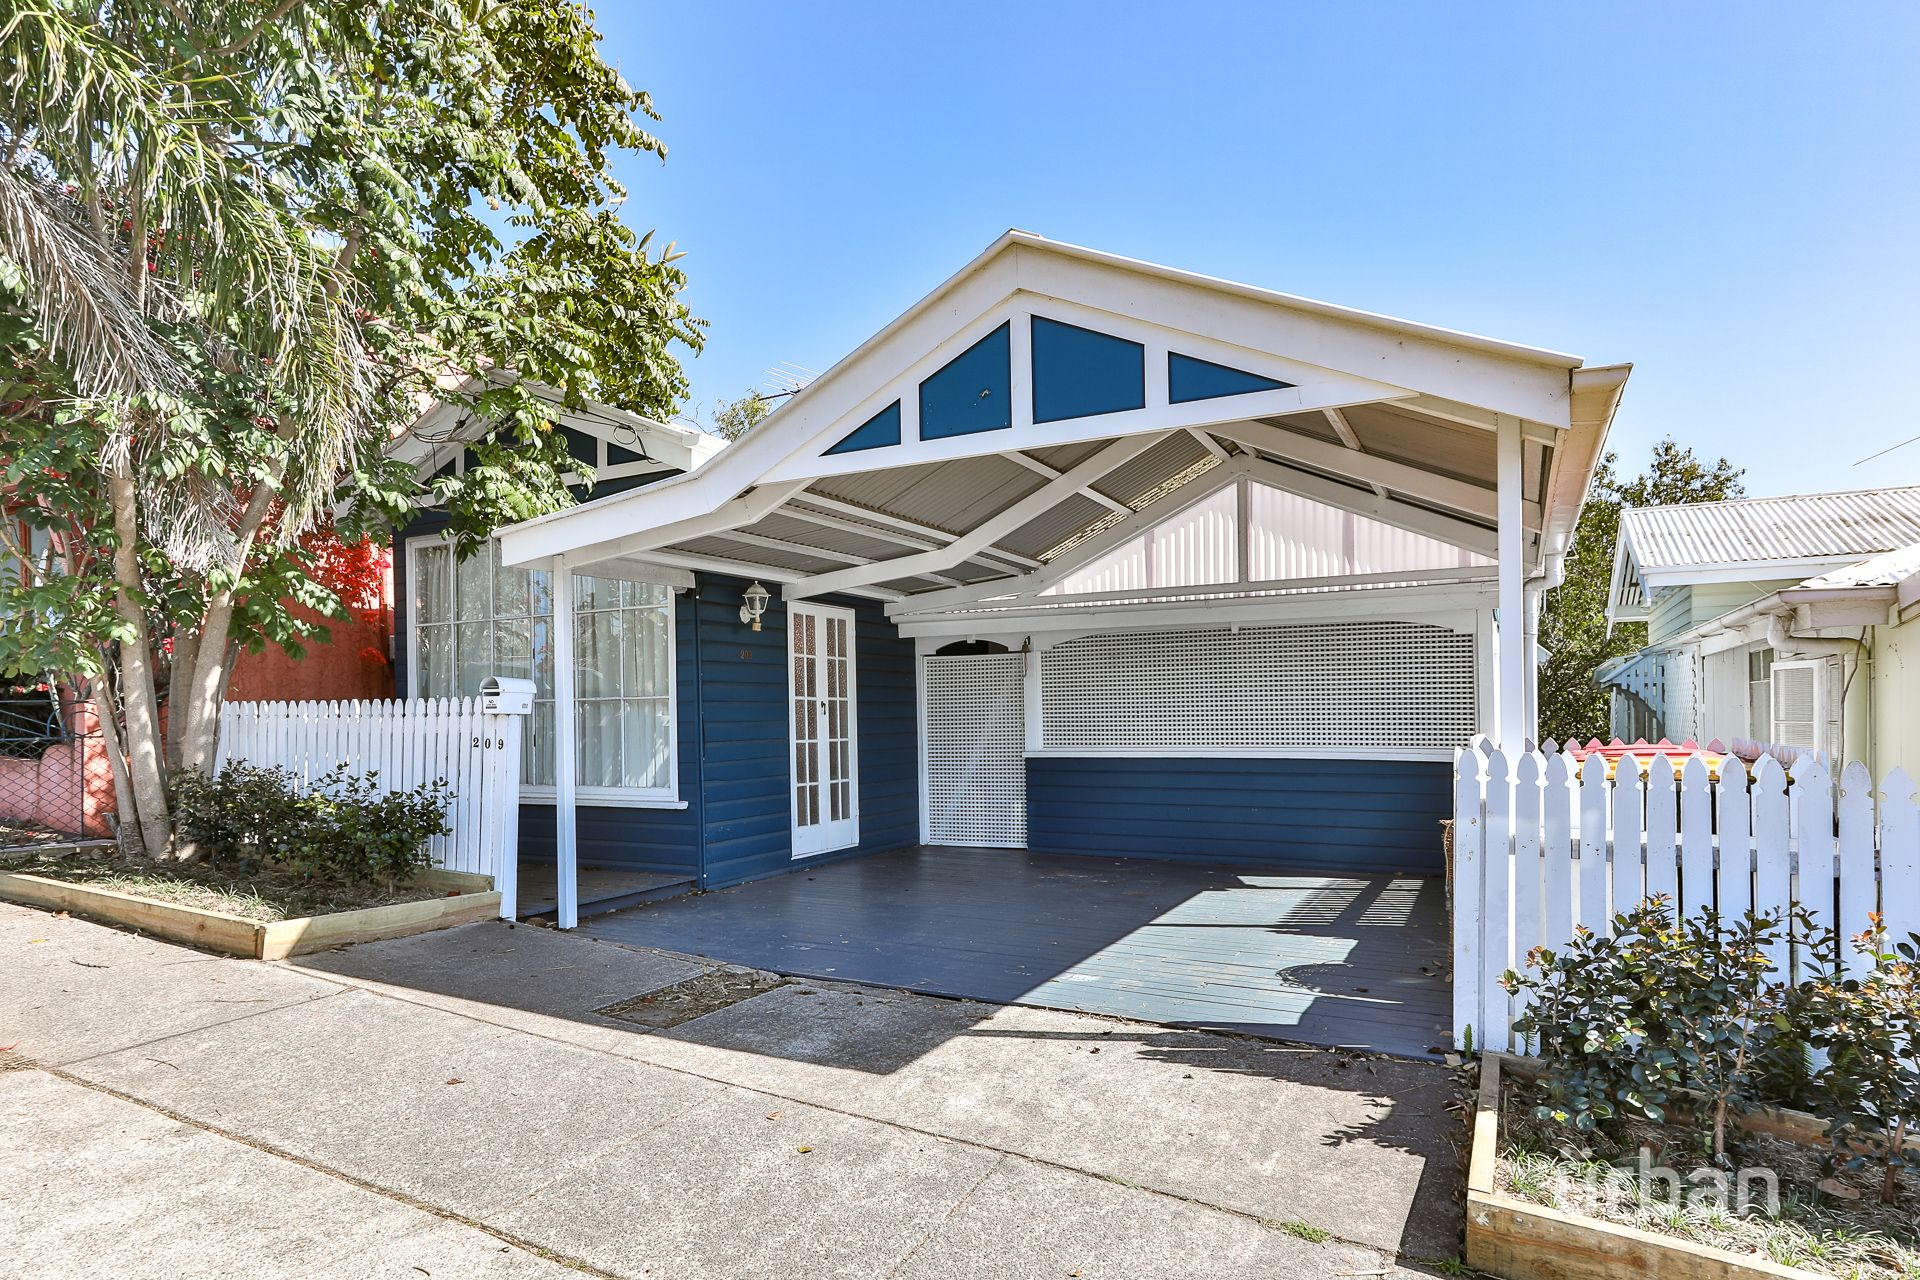 209 Latrobe Terrace Paddington 4064